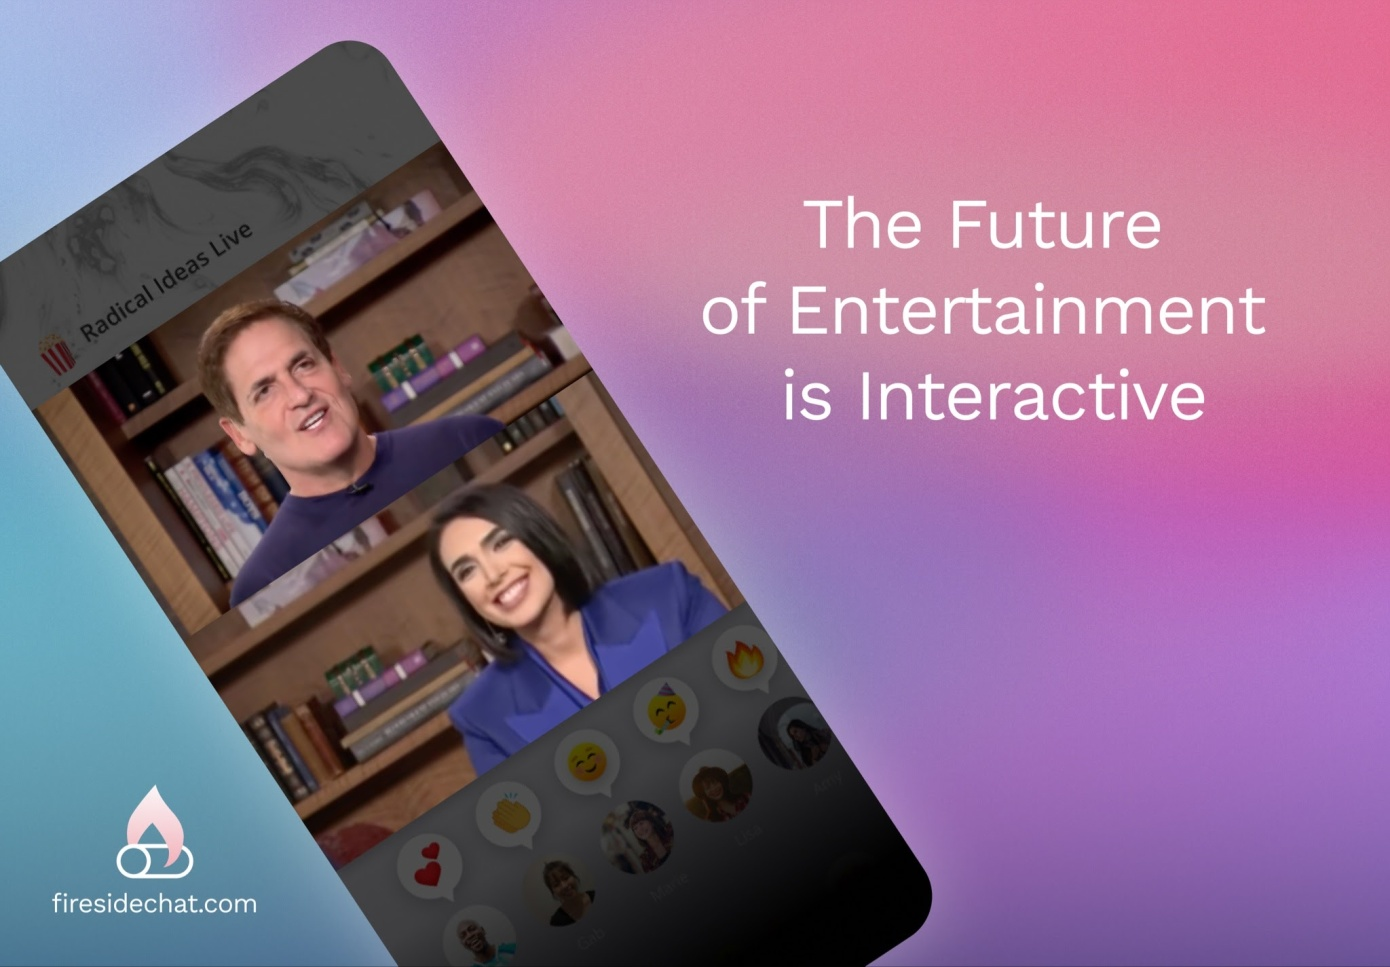 Mark Cuban-Backed Live Entertainment App Fireside Launches to Creators